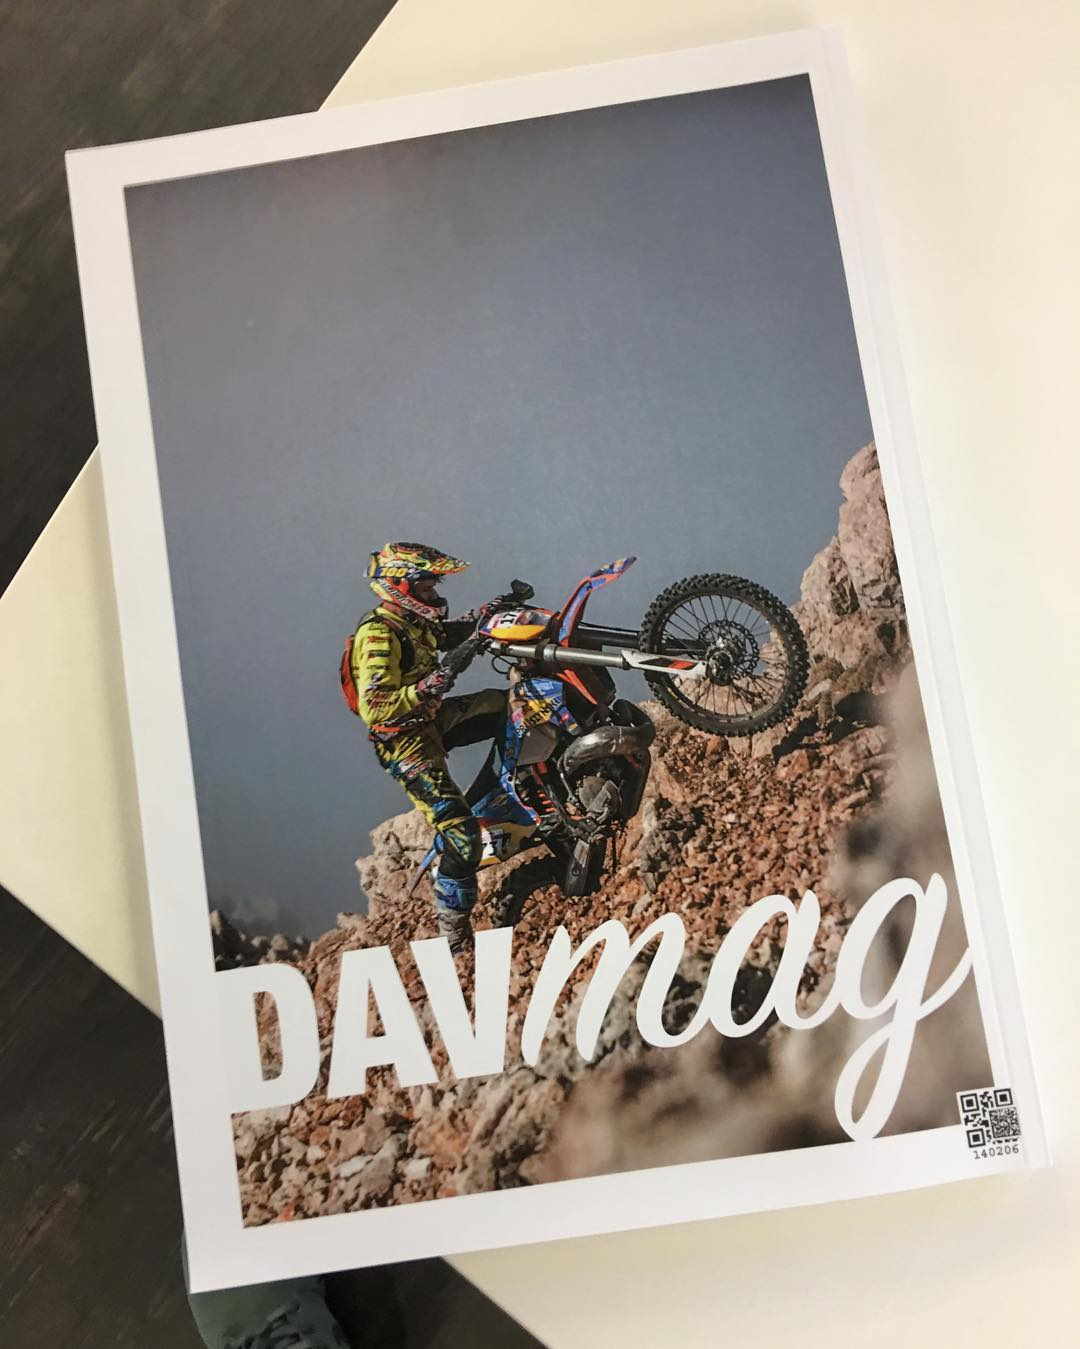 This beautifully produced work of art called @davmag_magazine just showed up in the office today. It is Kind of a modern, classy version of Playboy, full of superb Dirt bike photos and stunning girls. Check out their IG account or visit there website to get a copy! Produced by @go27go #dirtbikes #enduro #moto #ride100percent